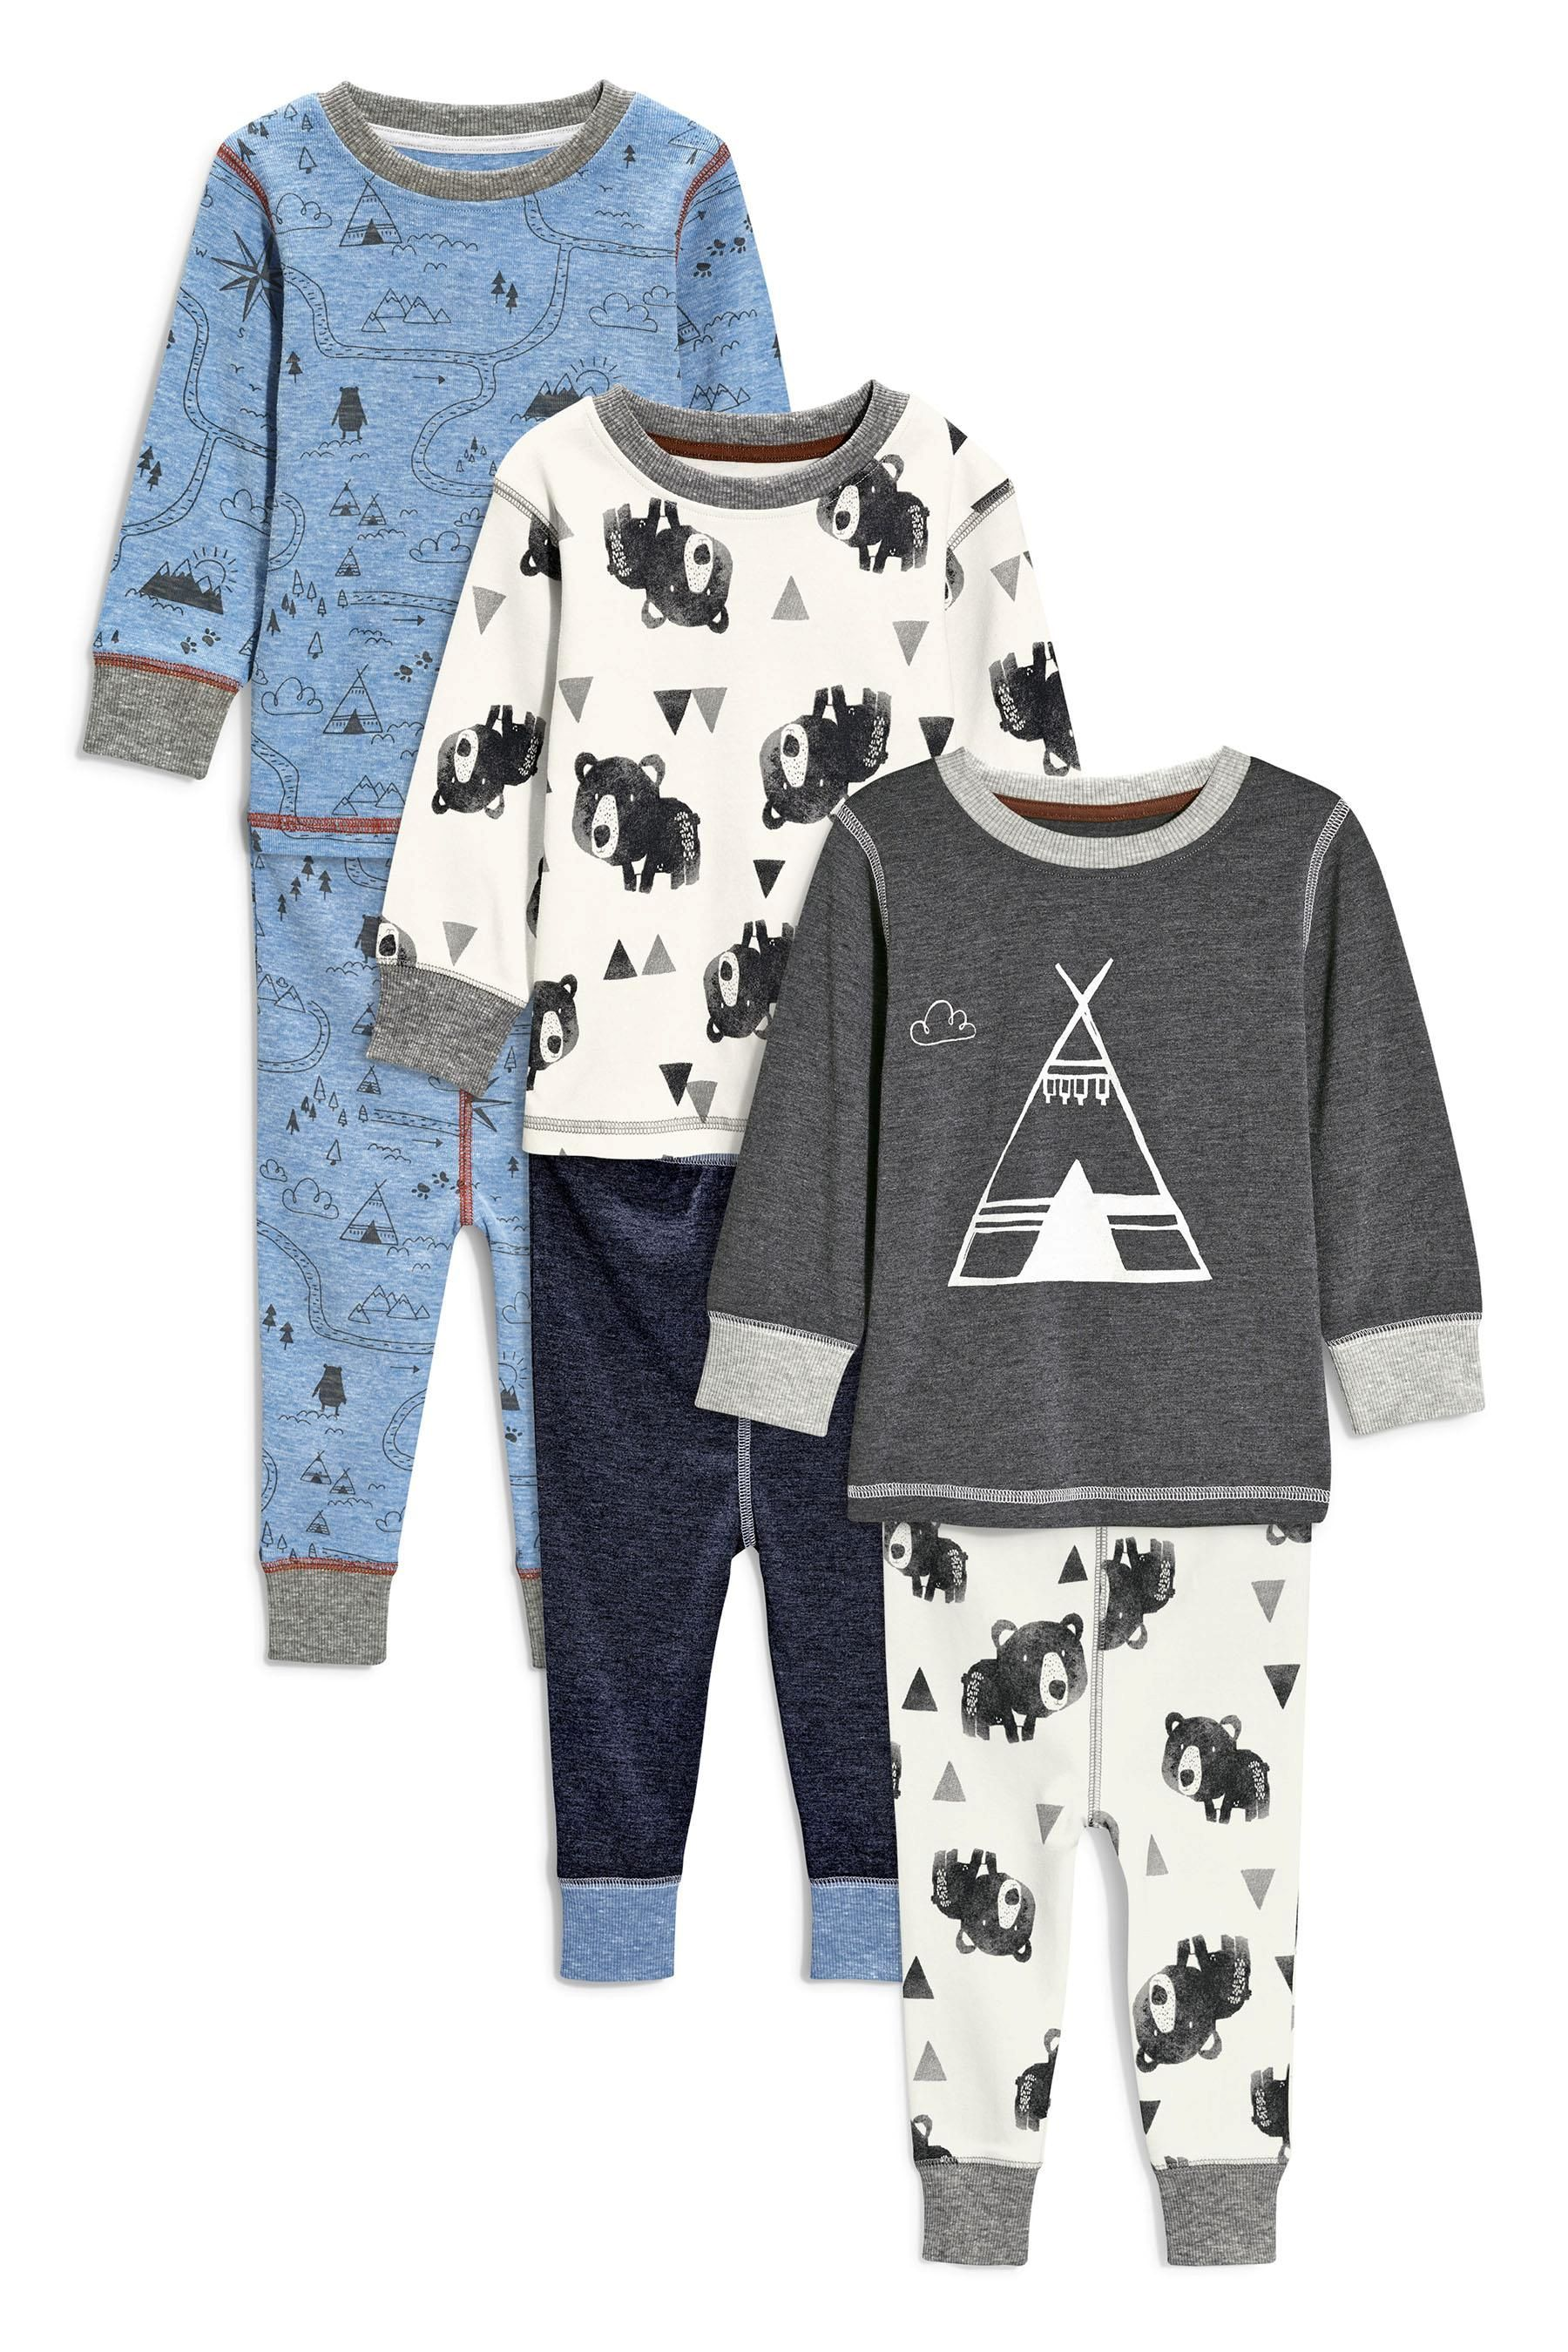 b0aff13b7 Buy Three Pack Teepee Bear Snuggle Fit Pyjamas (9mths-8yrs) from the ...